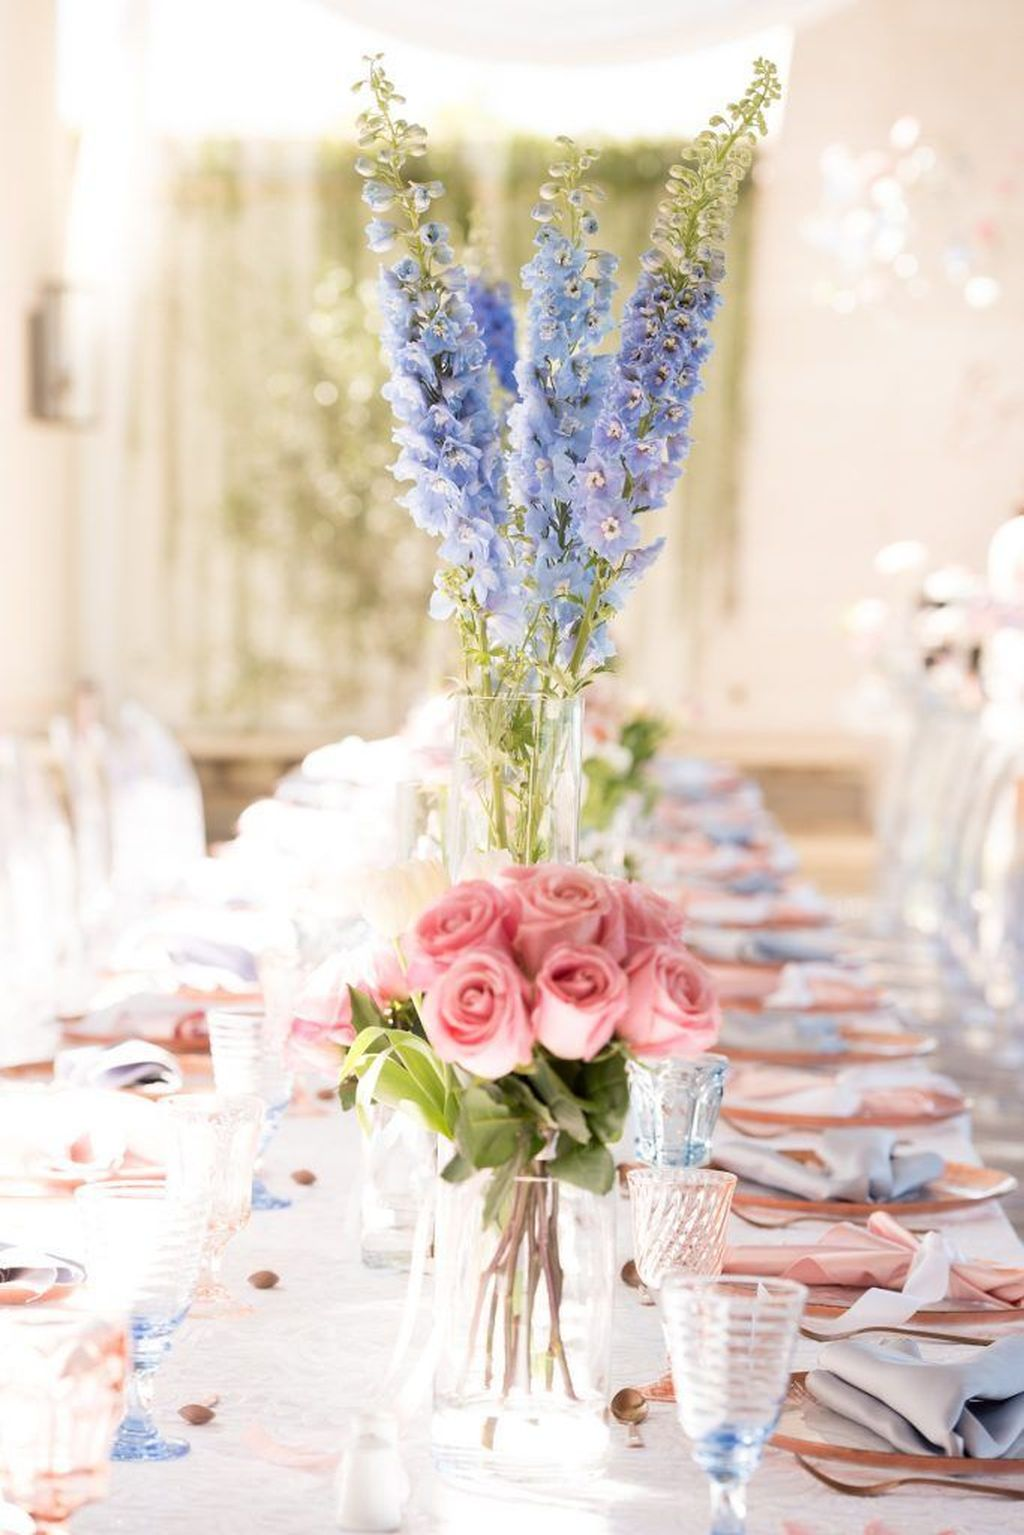 Fabulous Floral Theme Party Decor Ideas Best For Summertime 28